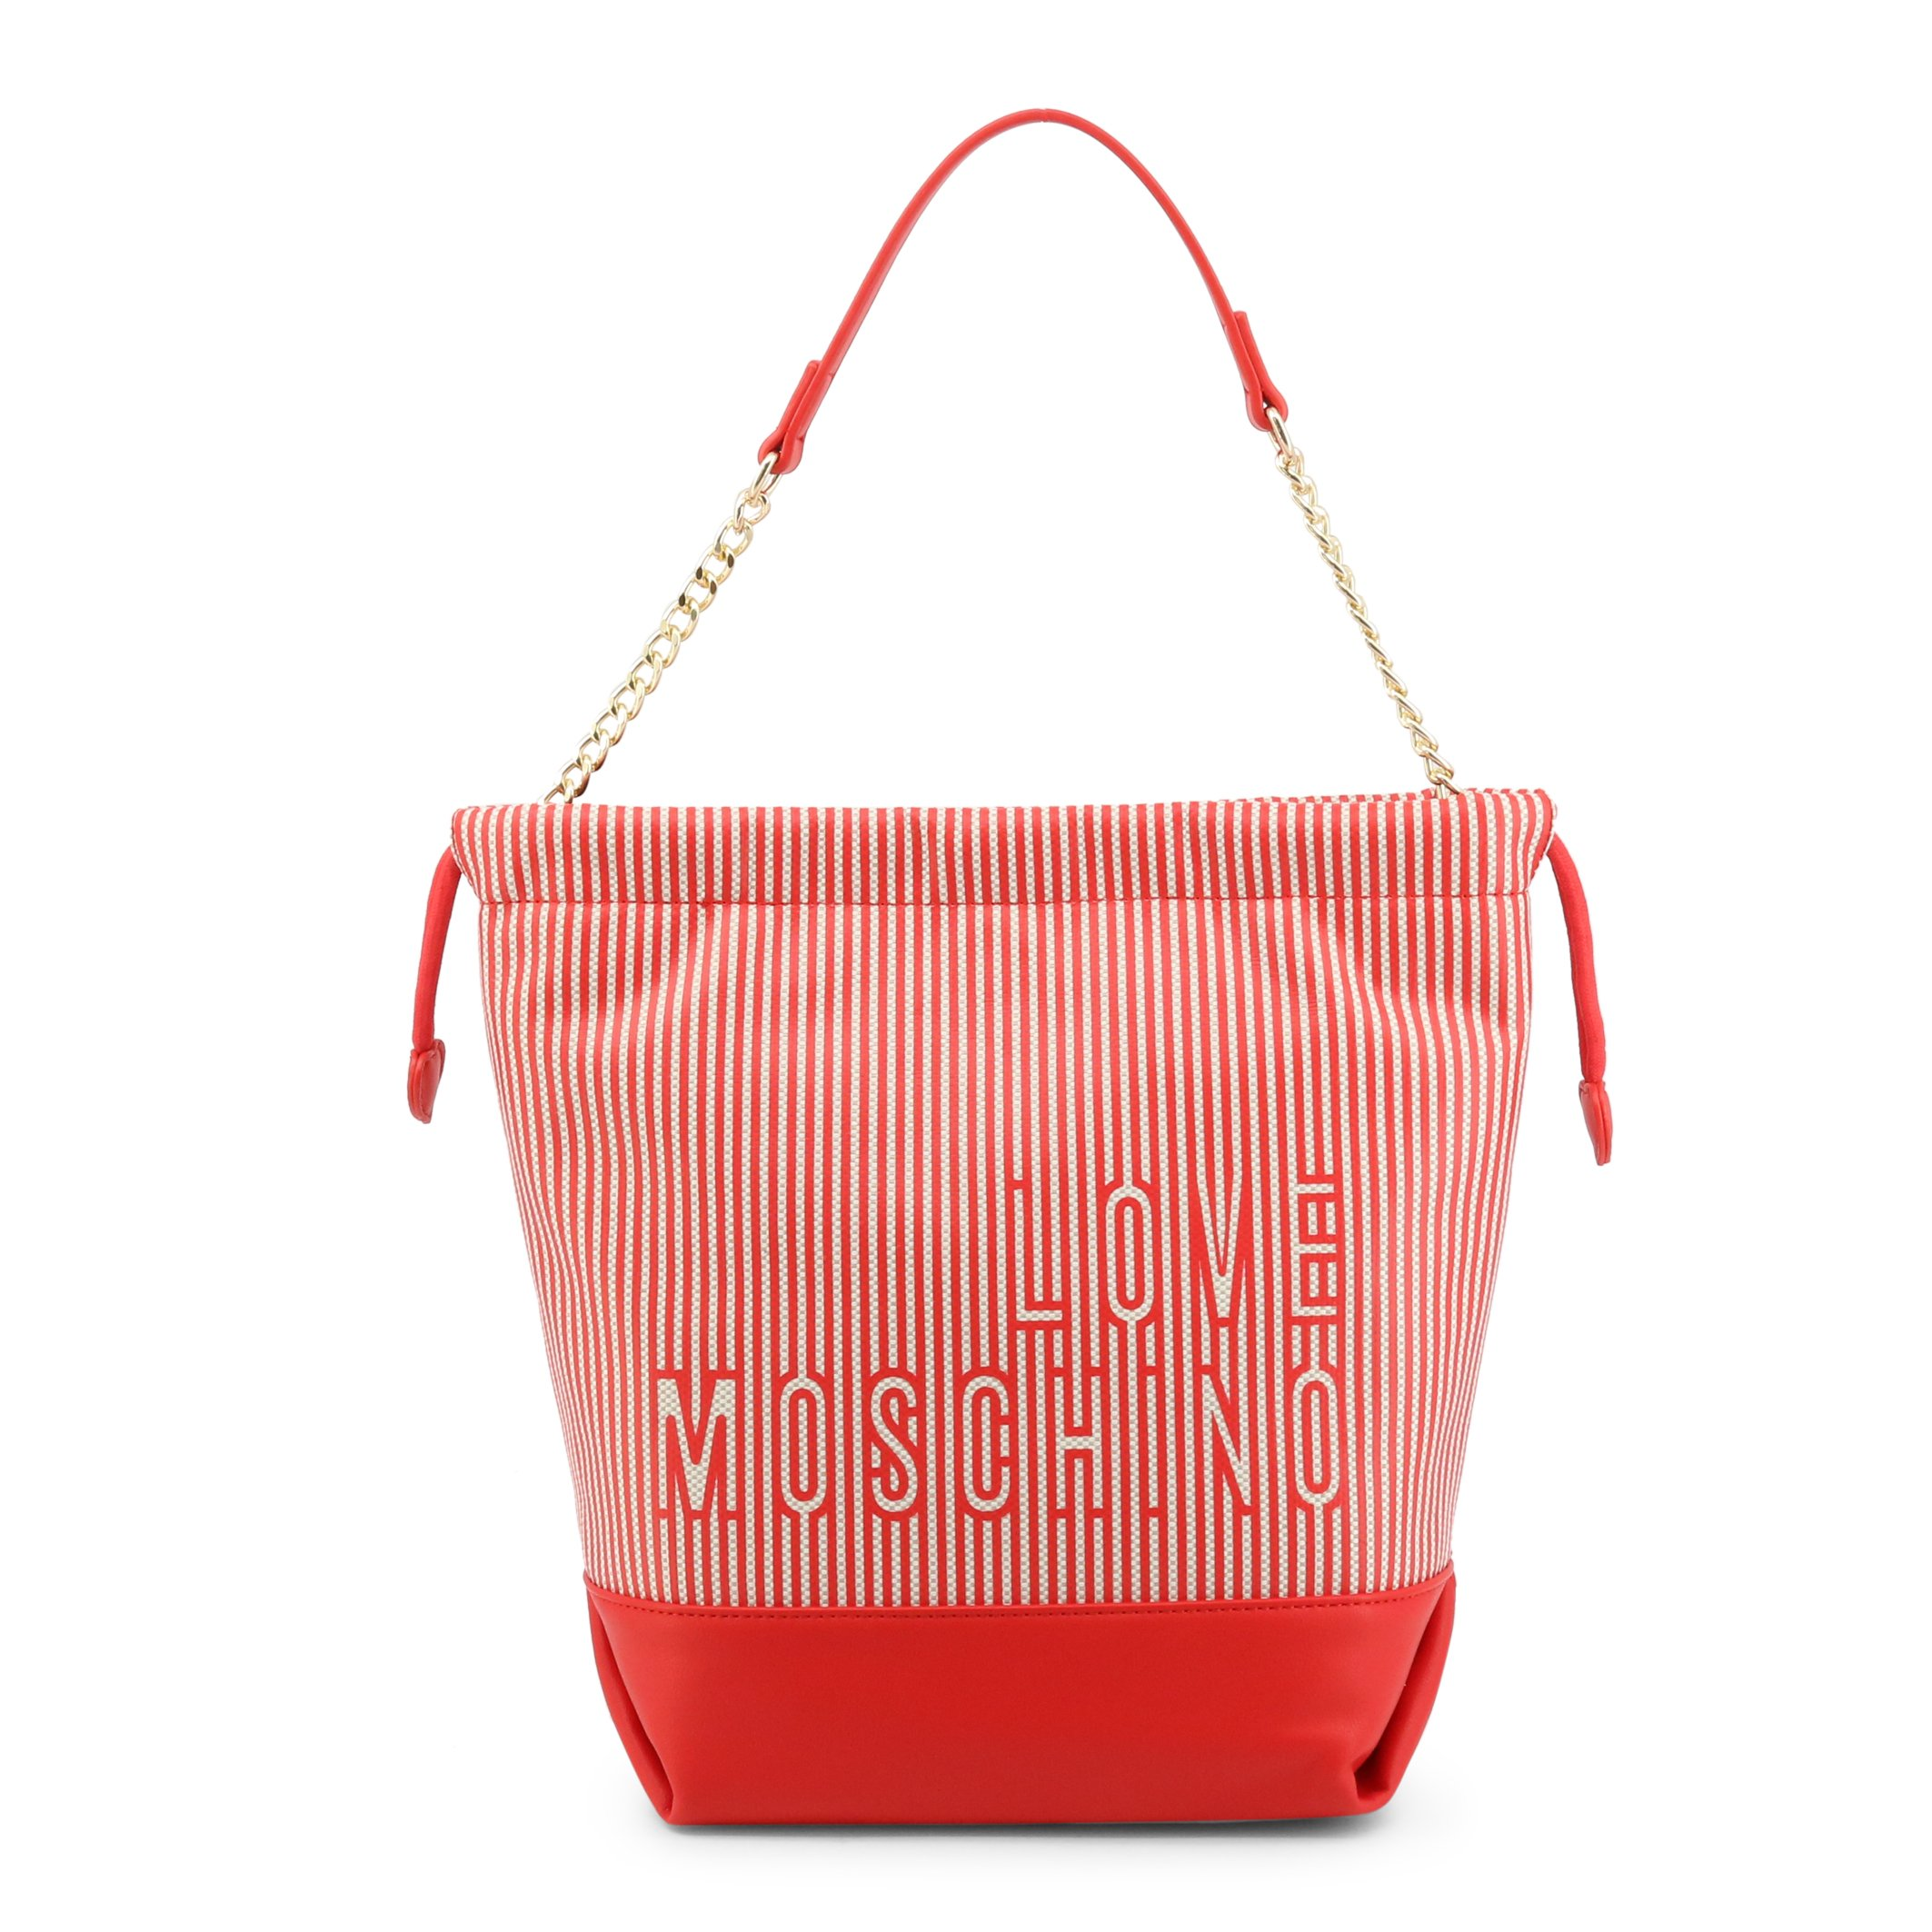 Love Moschino Women's Shoulder Bag Various Colours JC4230PP0CKE1 - red NOSIZE